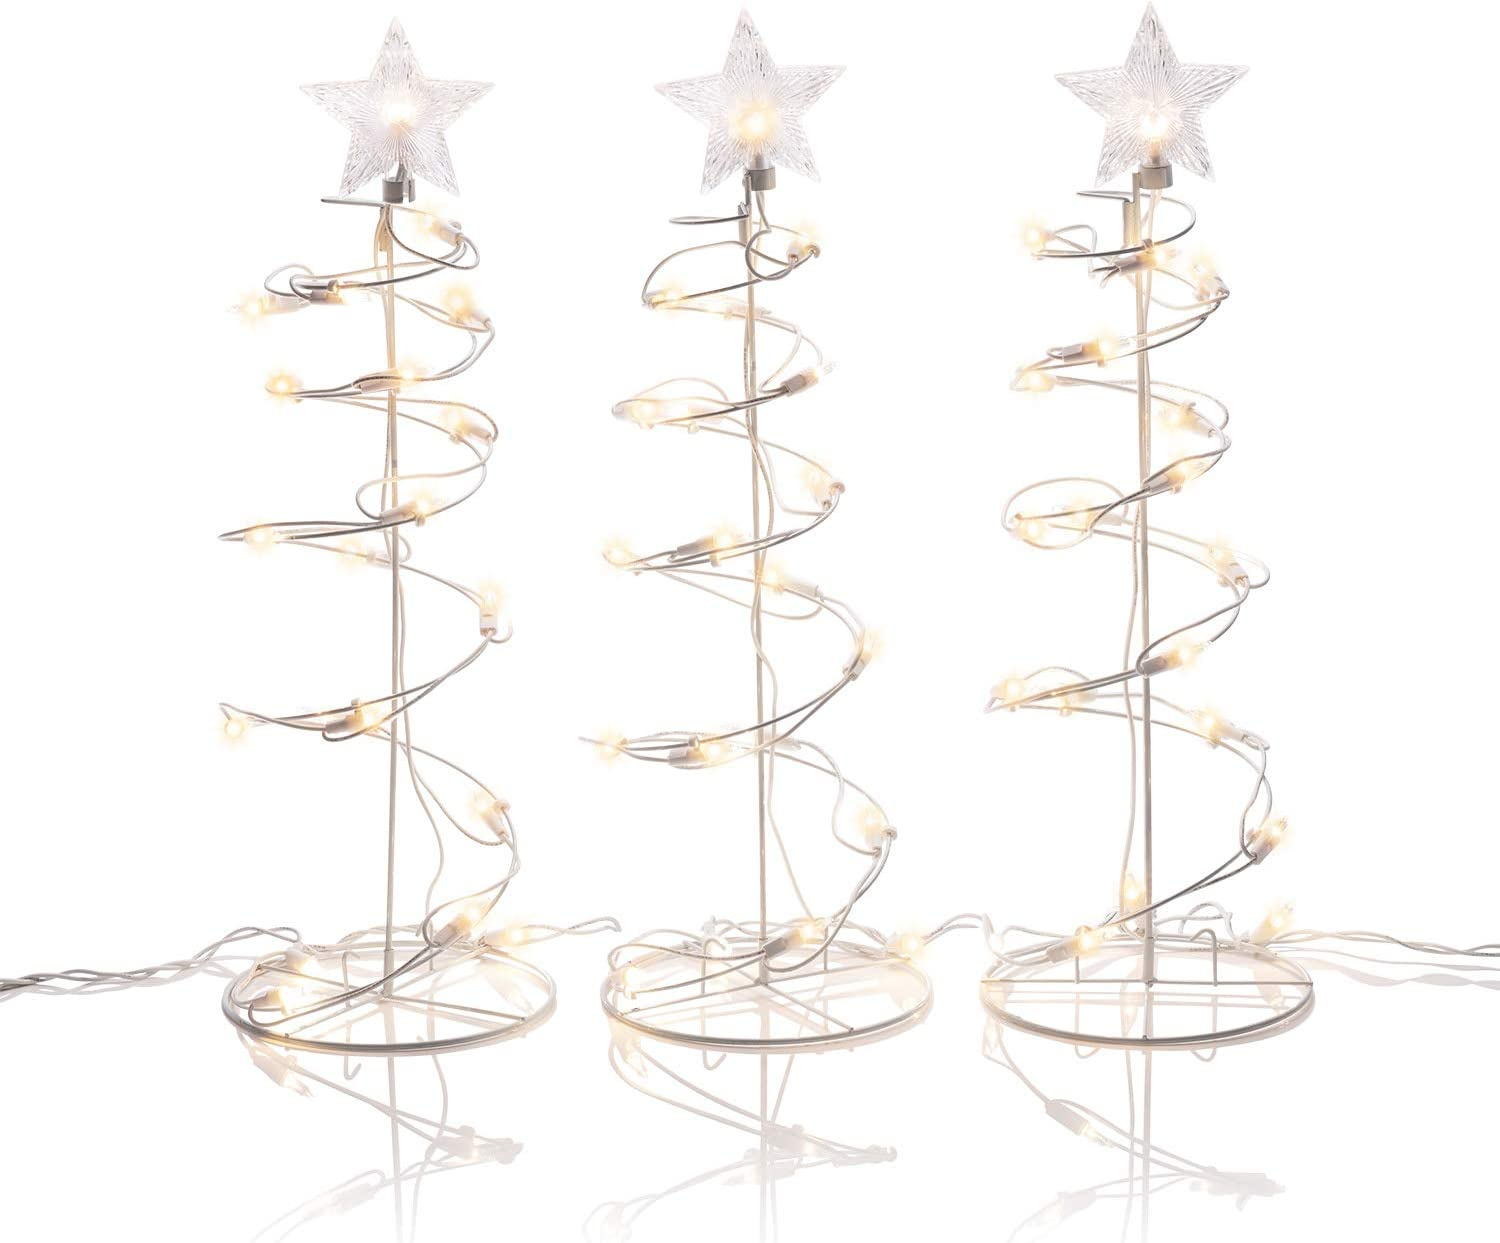 Alpine Corporation EUT142-3 Spiral Christmas Tree Decor with LED Lights Indoor or Outdoor Festive Holiday Décor, Set of 3, 19-Inch Tall, Brown